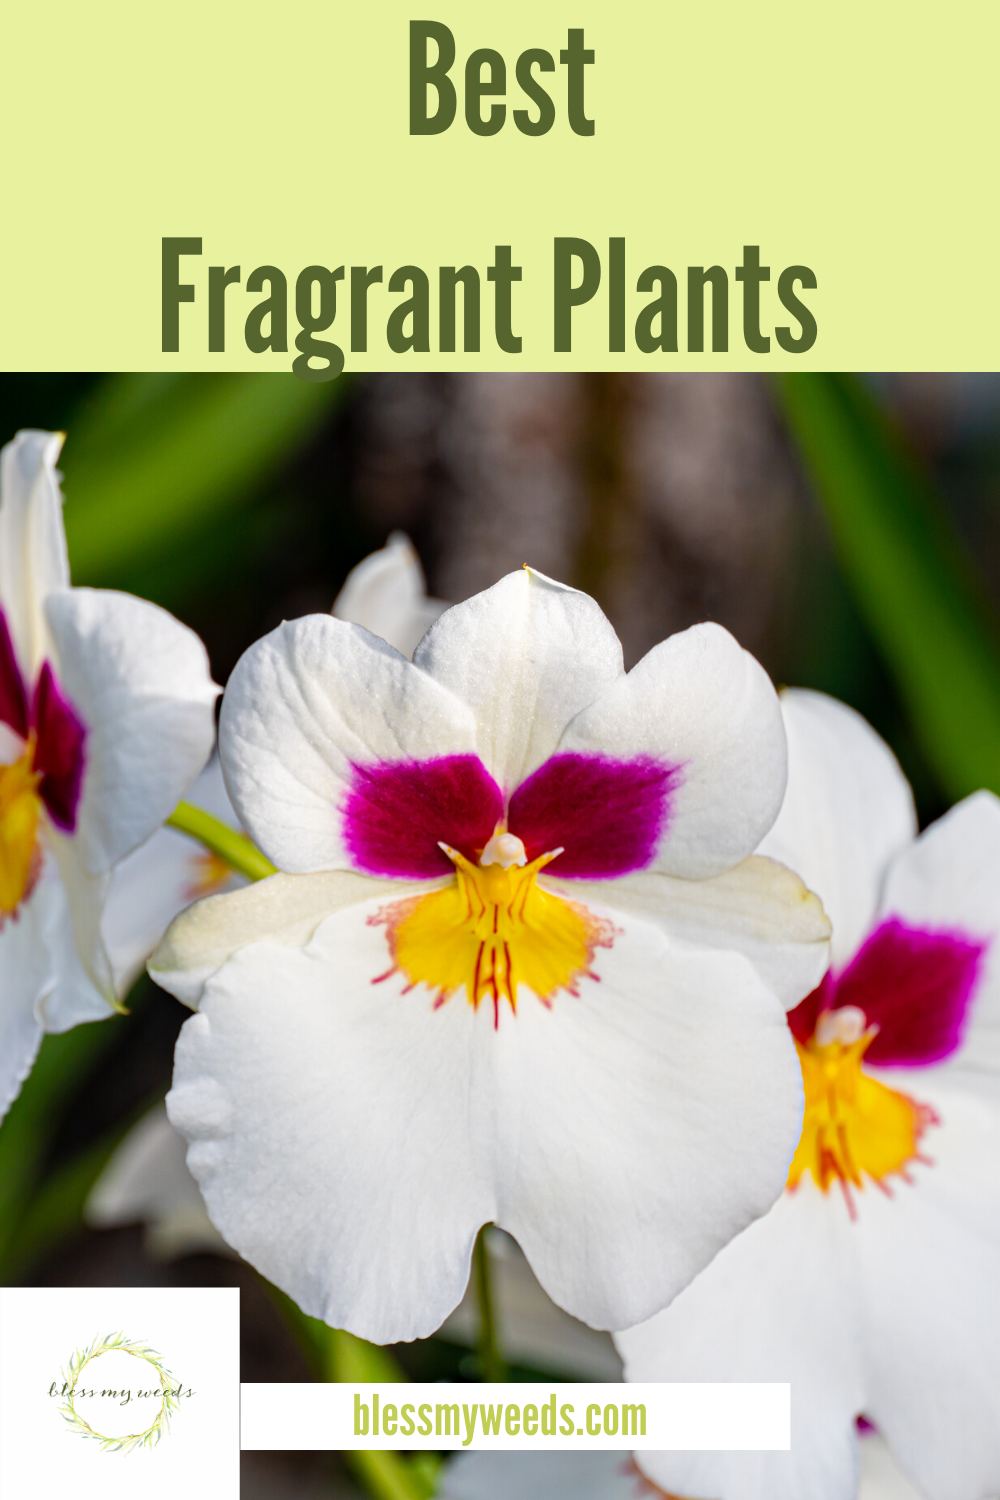 Some plants are not only beautiful, they also happen to smell heavenly. Whether indoors or out in your yard, these fragrant plants will not disappoint. Read on to learn more about them and where you could put them. #Fragrantplants #houseplants #gardeningtips #lowmaintenanceperennials #blessmyweedsblog